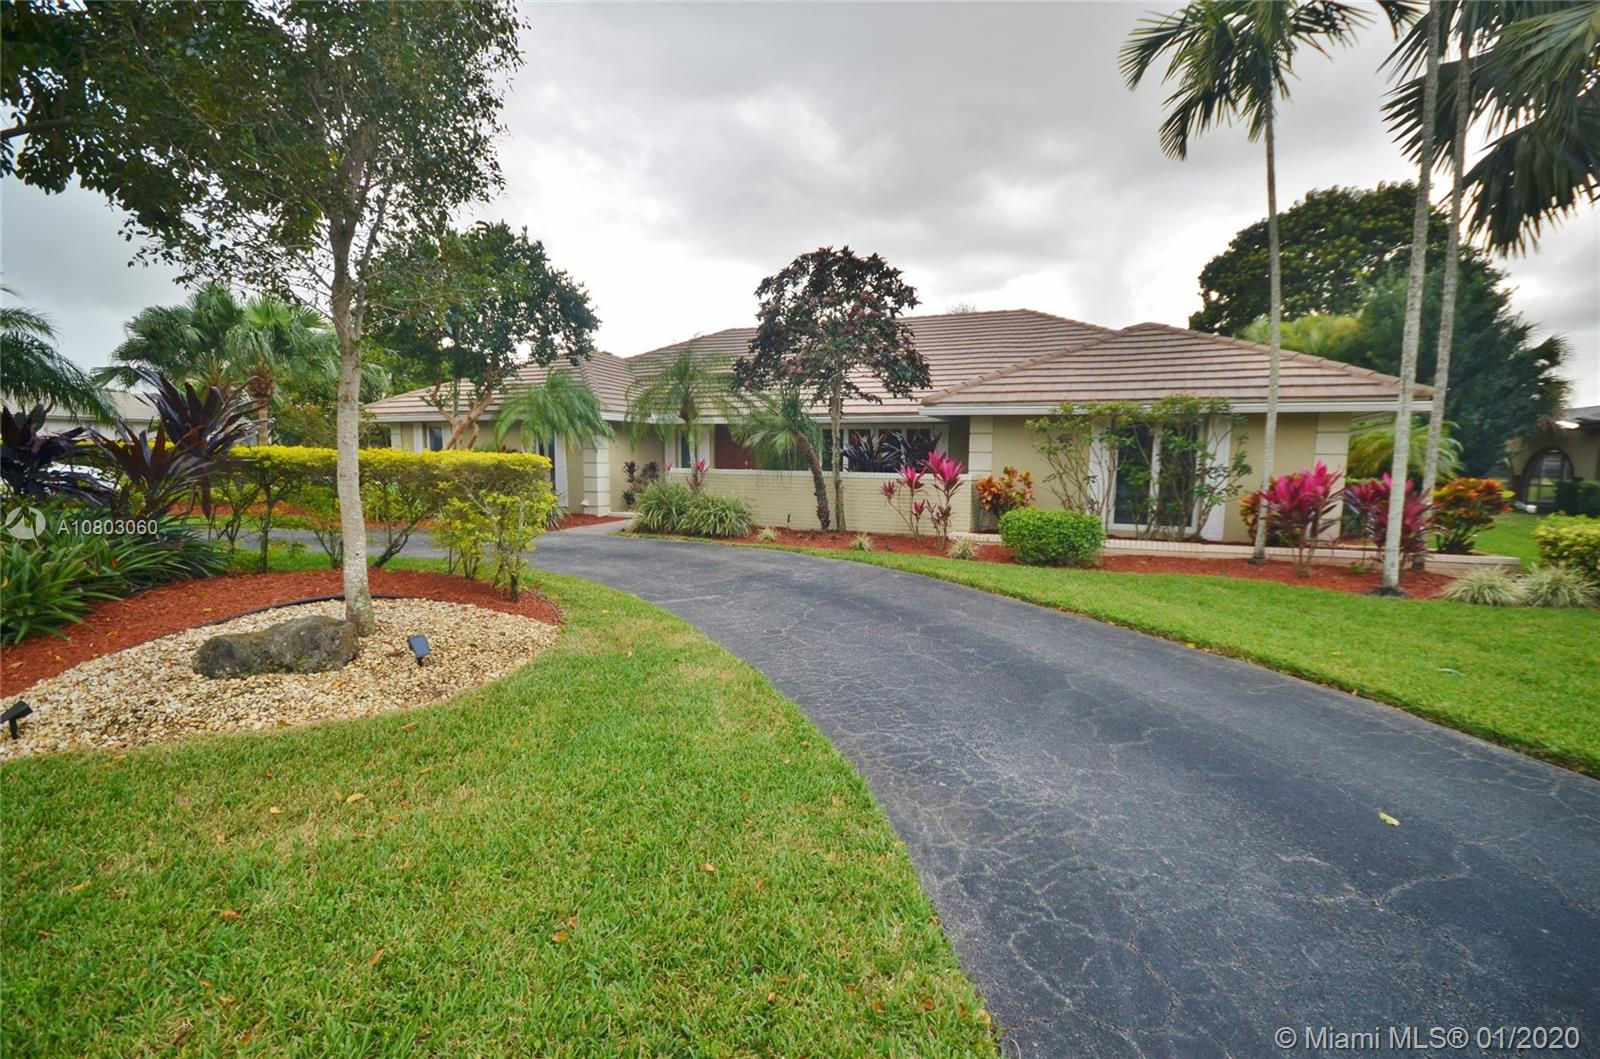 3160 NW 111 AVE, Coral Springs, FL 33065